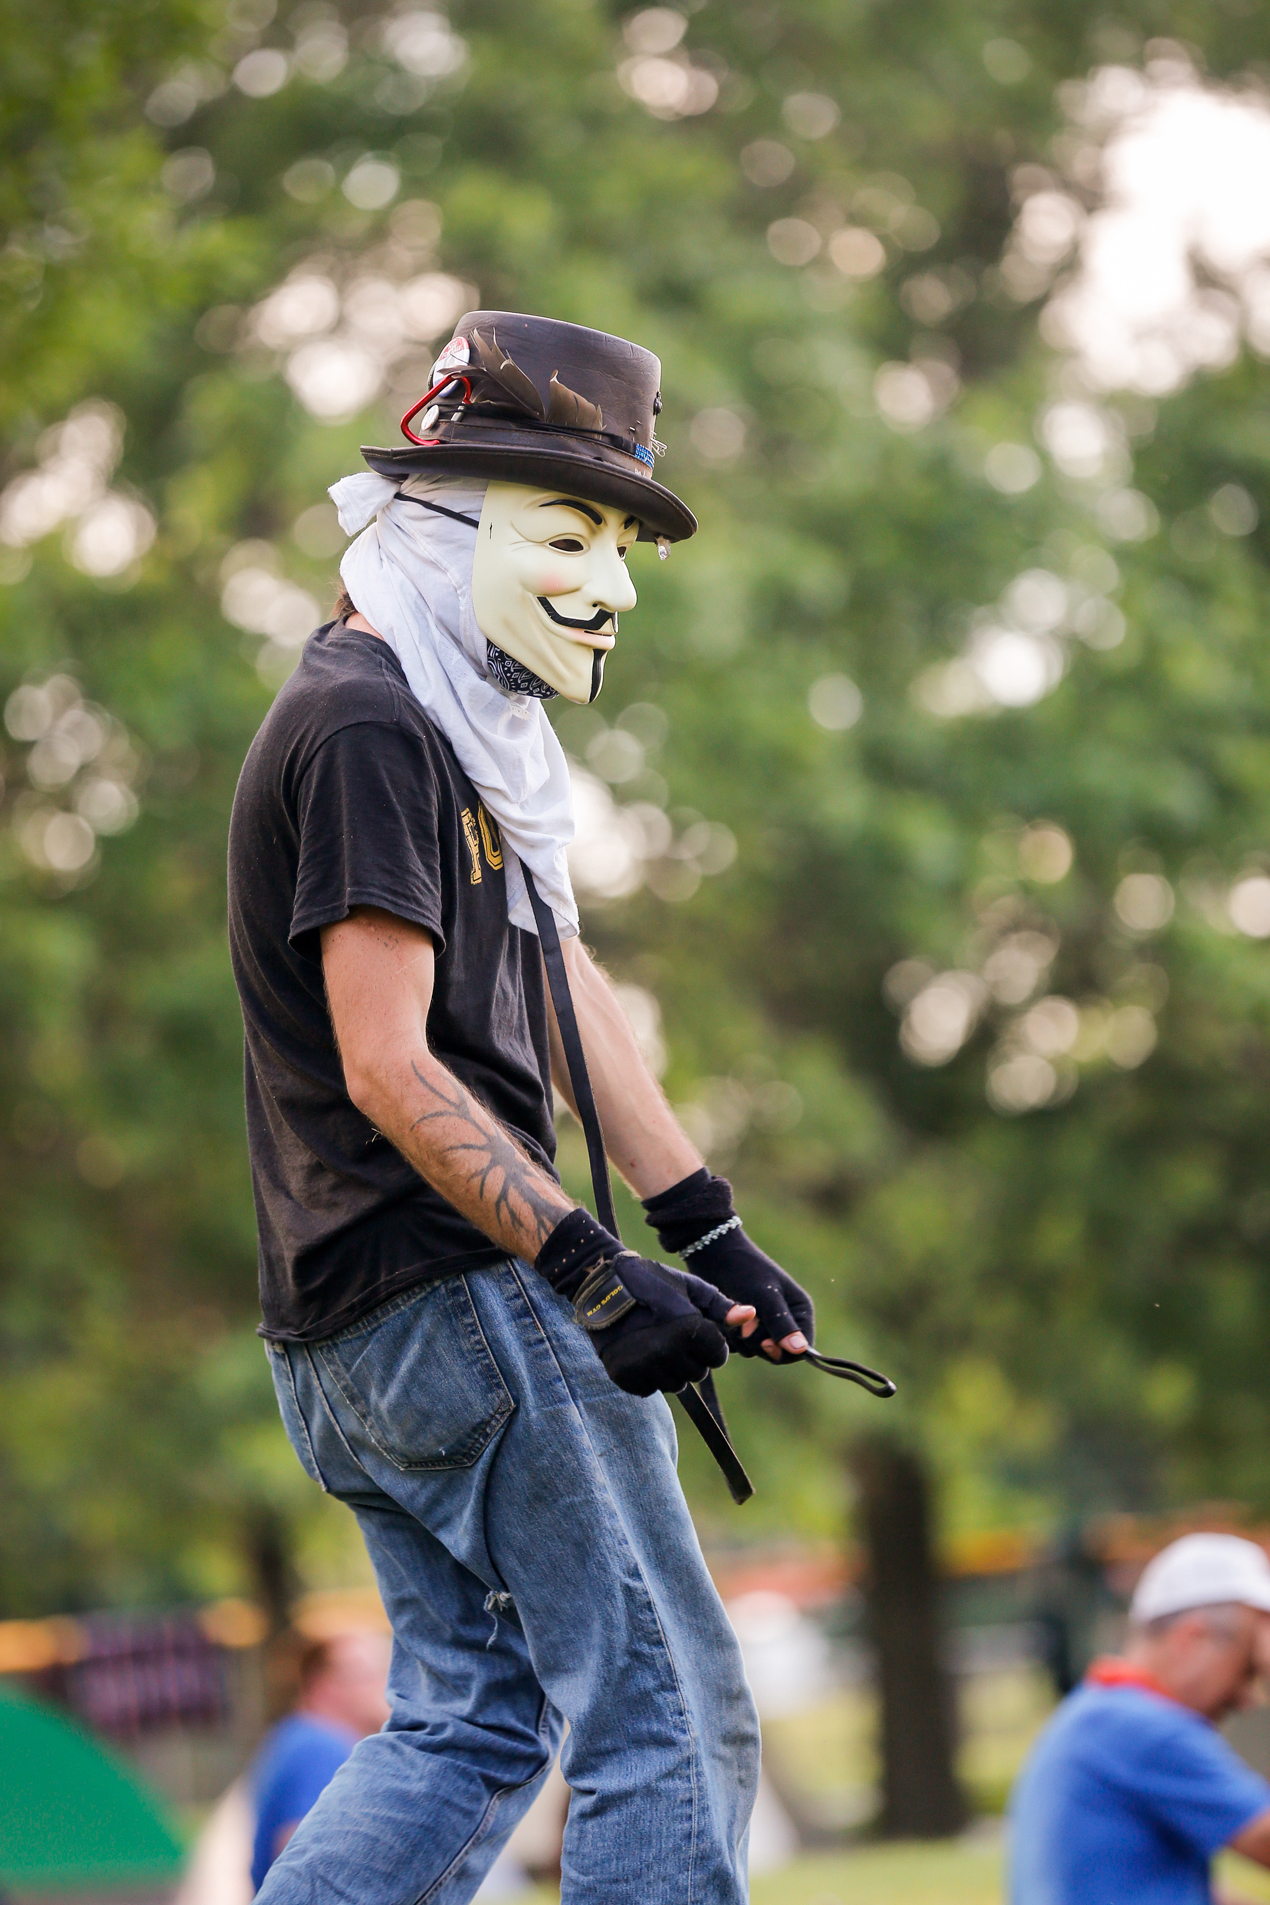 2016 DNC Protestor in Guy Fawkes Mask